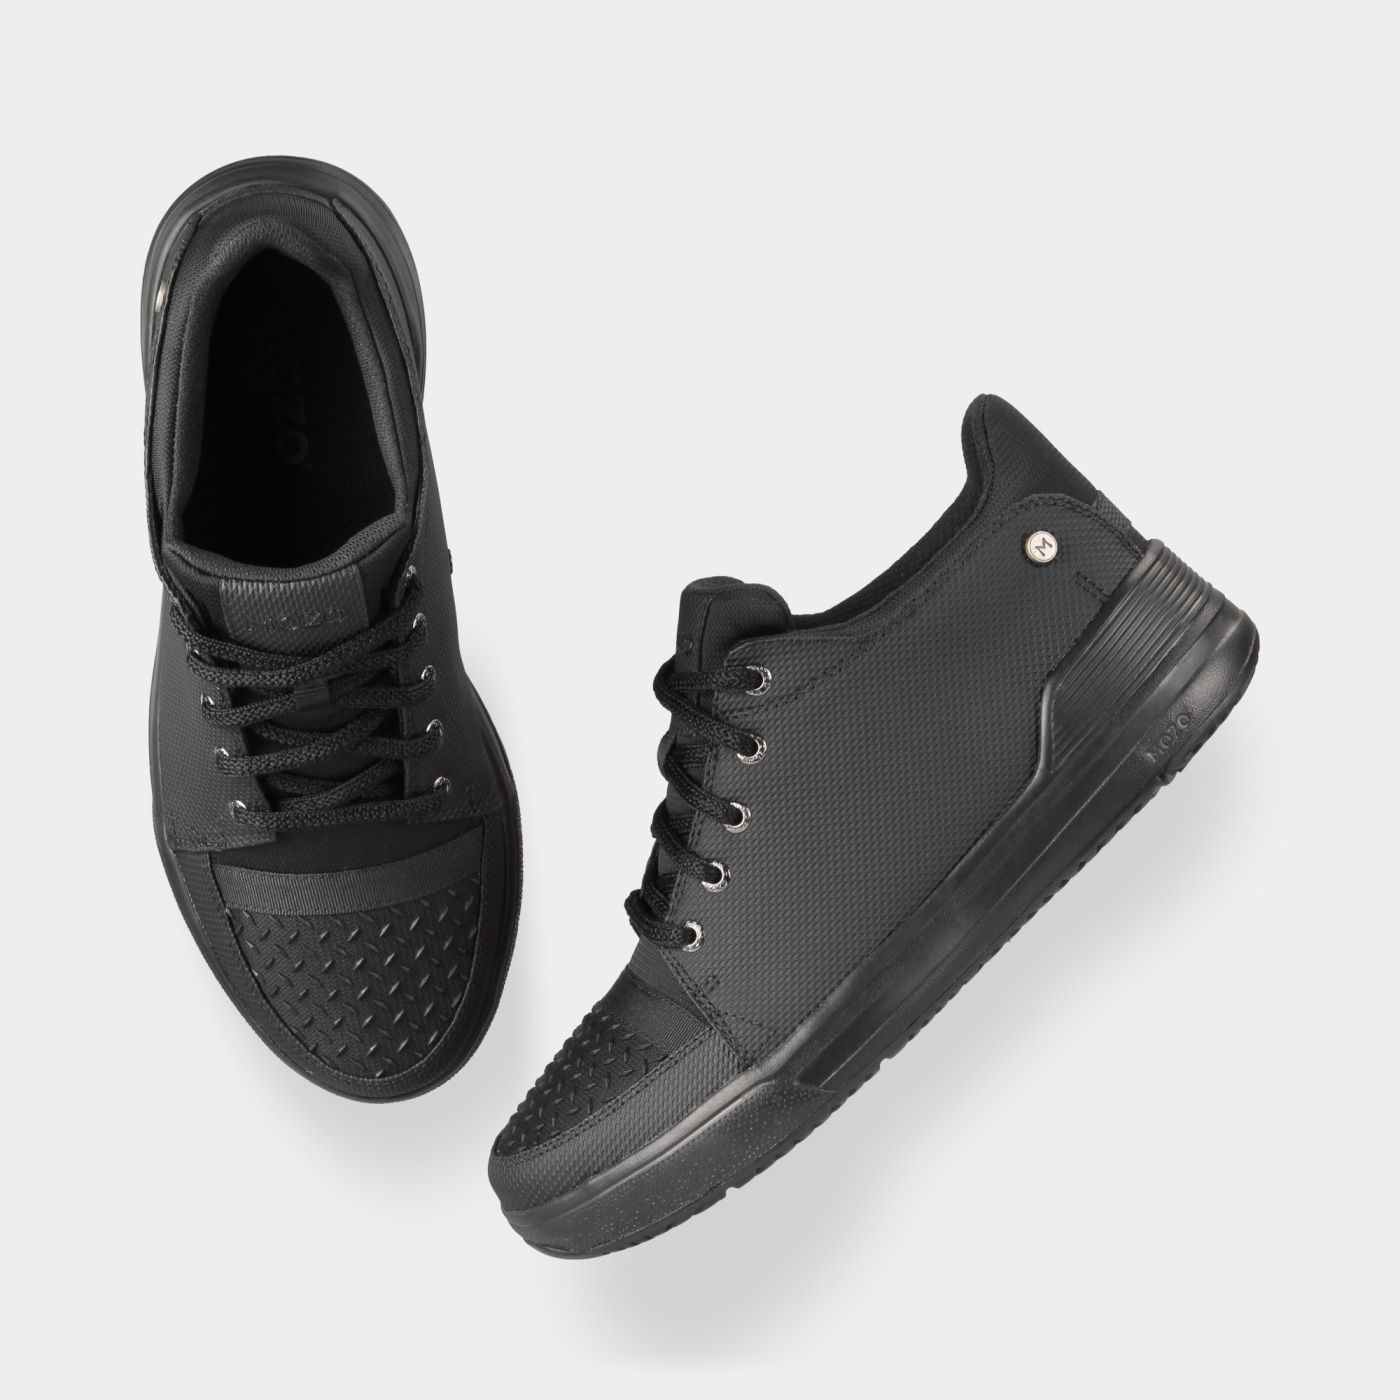 MOZO's Gallant is a slip resistant kitchen shoe with